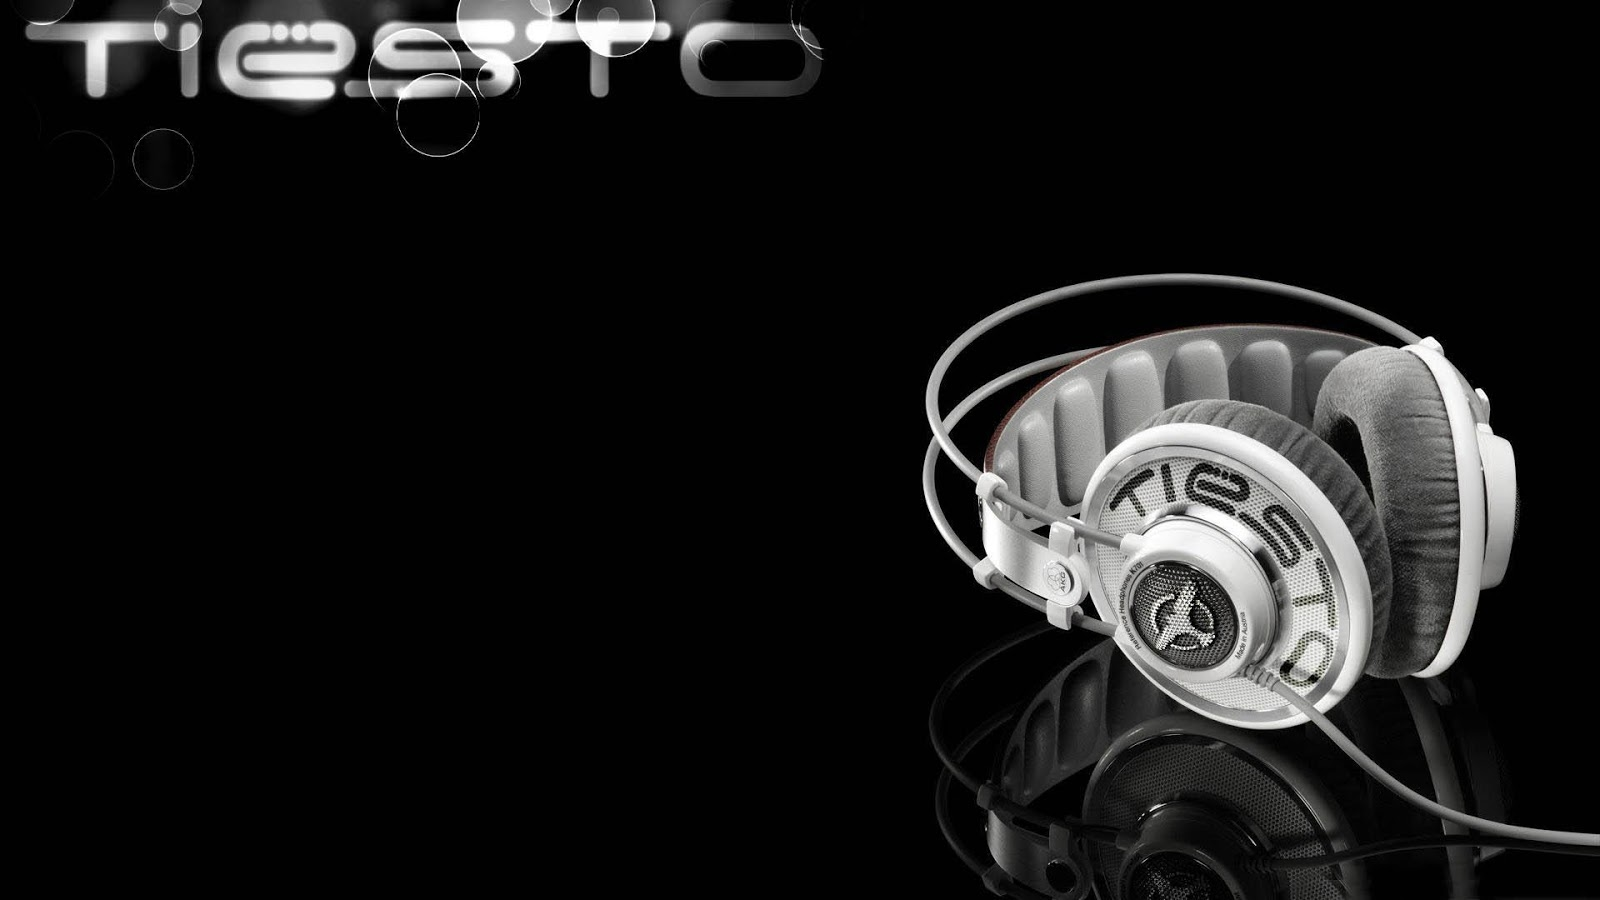 Tiesto Headphones Mystery Wallpaper 1600x900